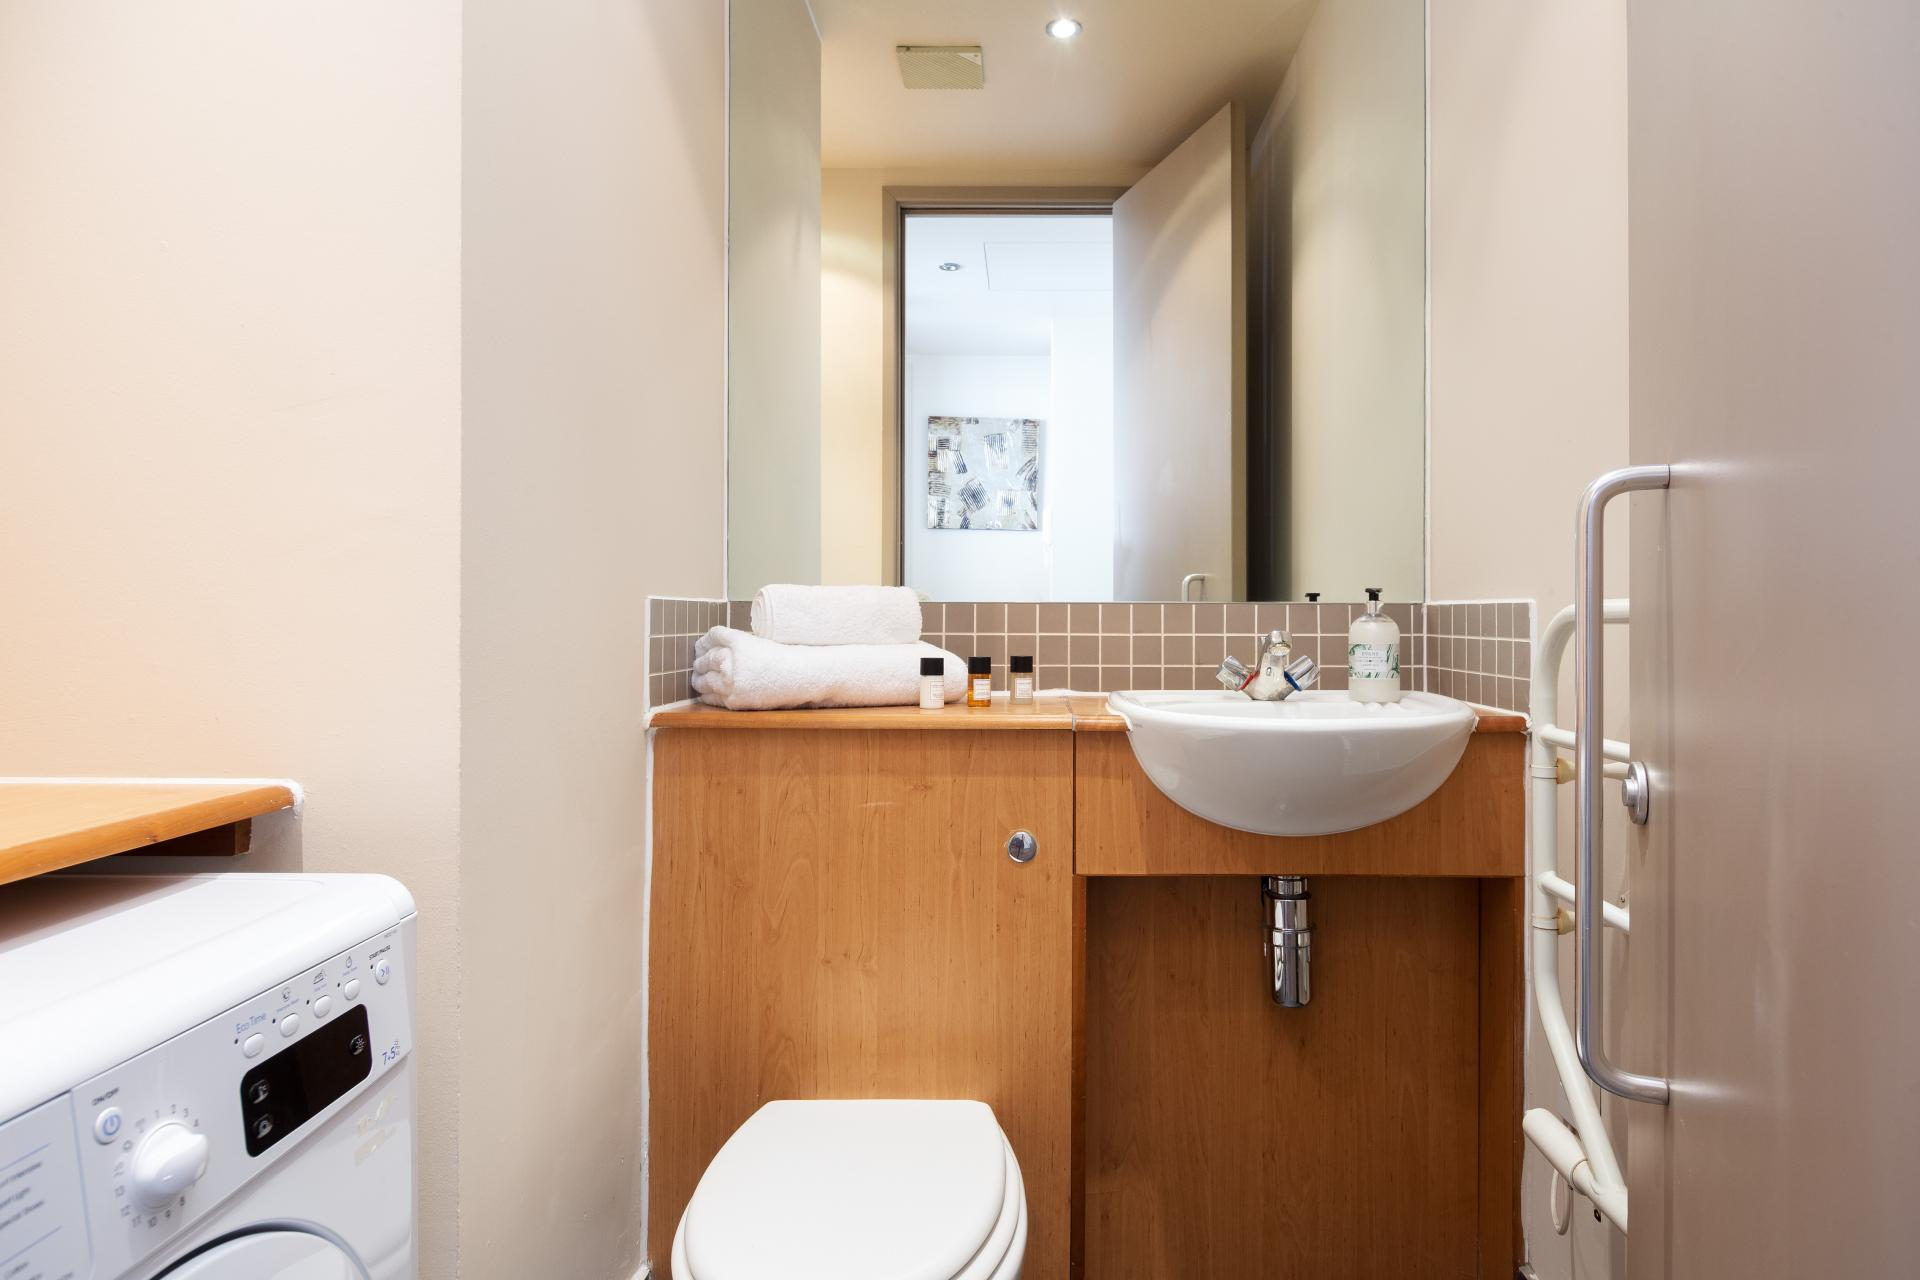 Bathroom at Lawrence House Serviced Apartments, Old Street, London - Citybase Apartments